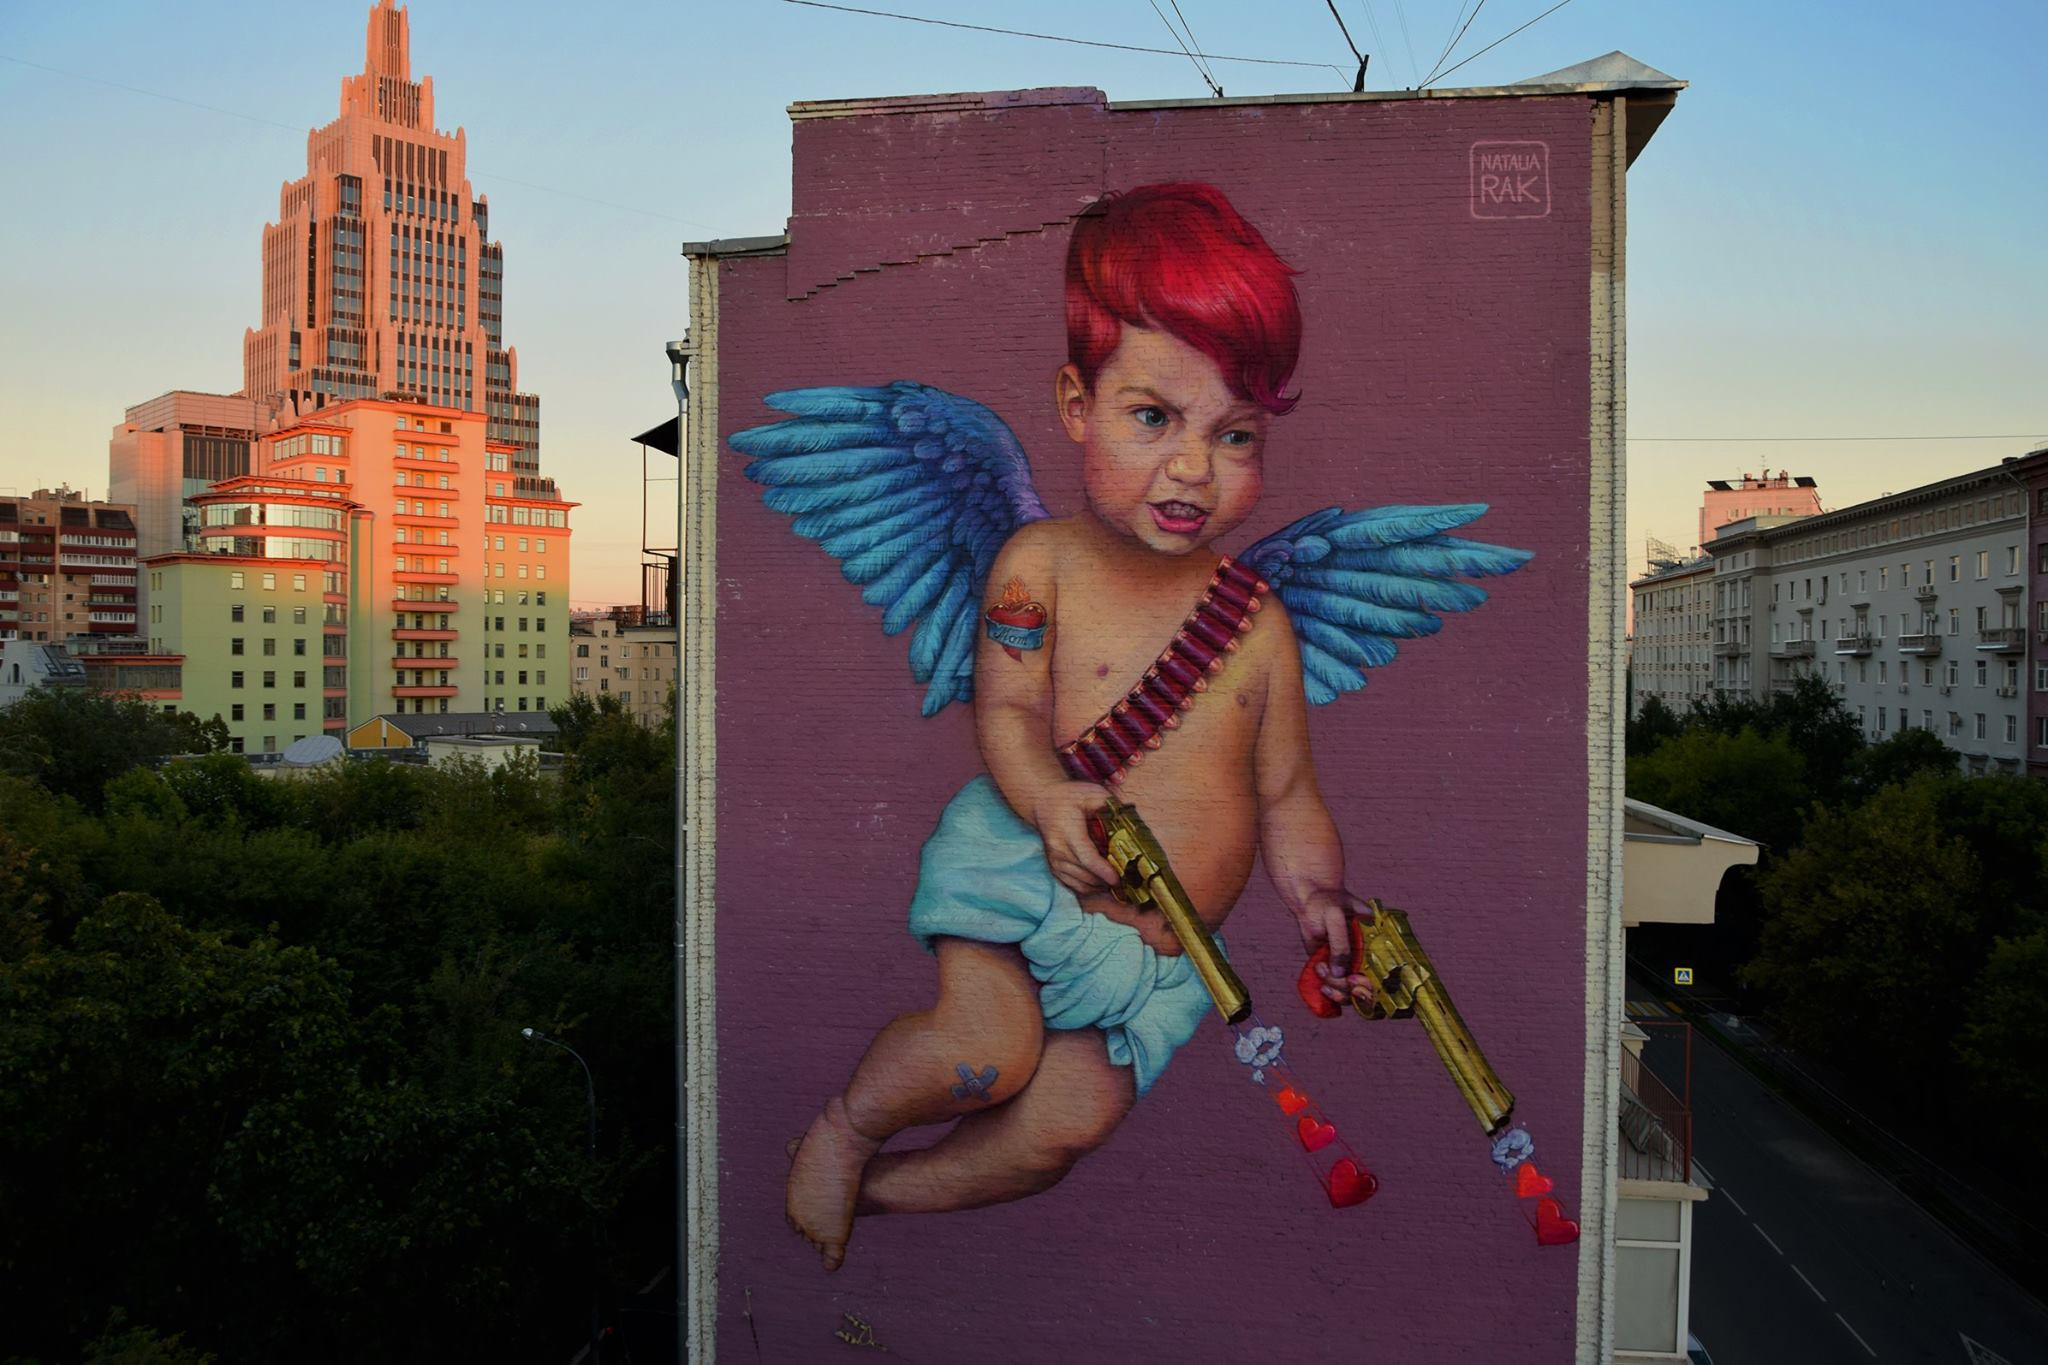 Natalia Rak in Moscow, RS